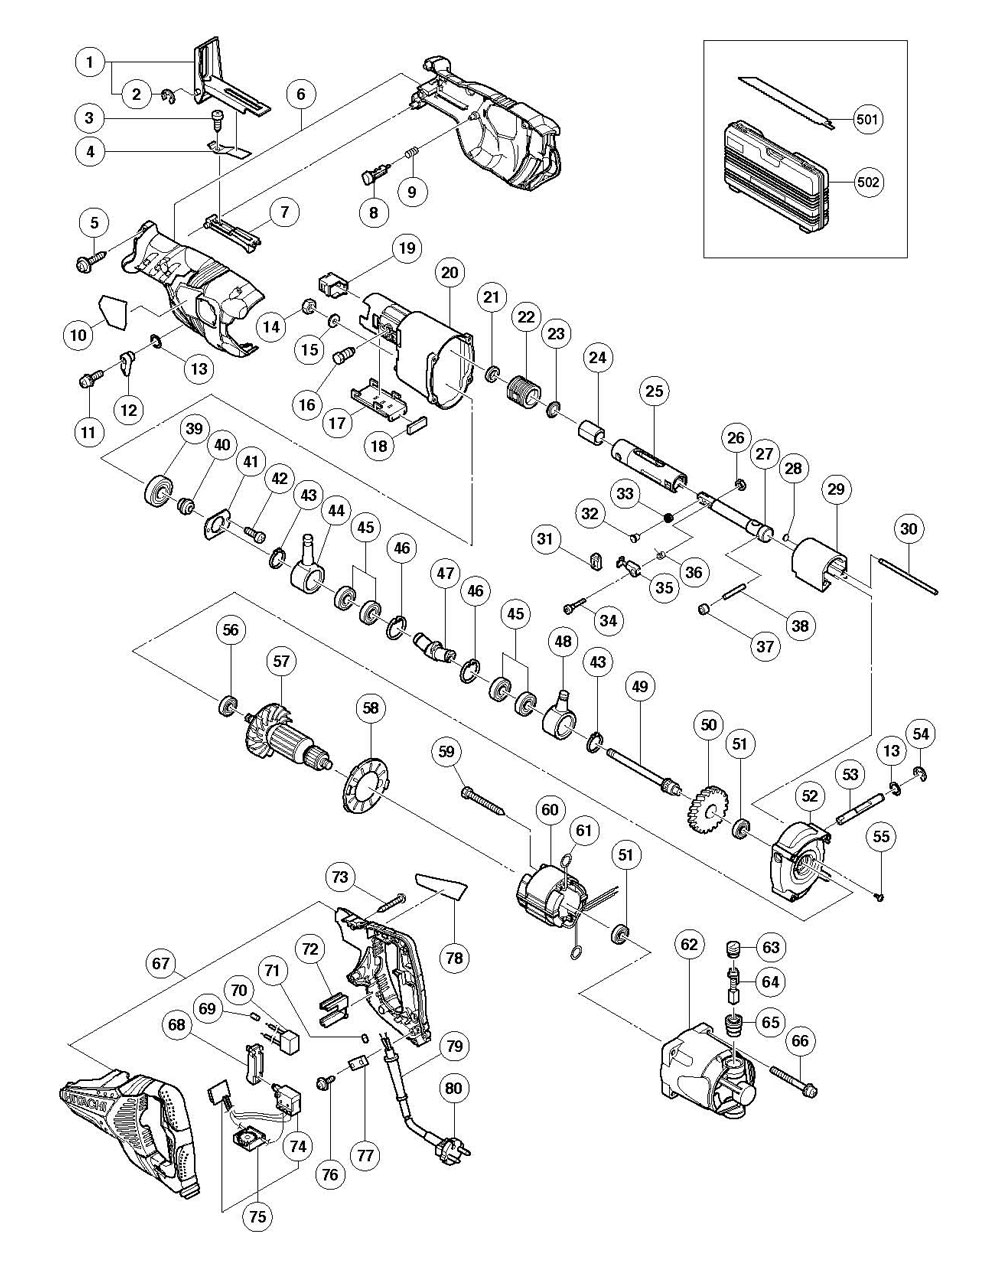 CR13VBY - Reciprocating Saw Parts schematic